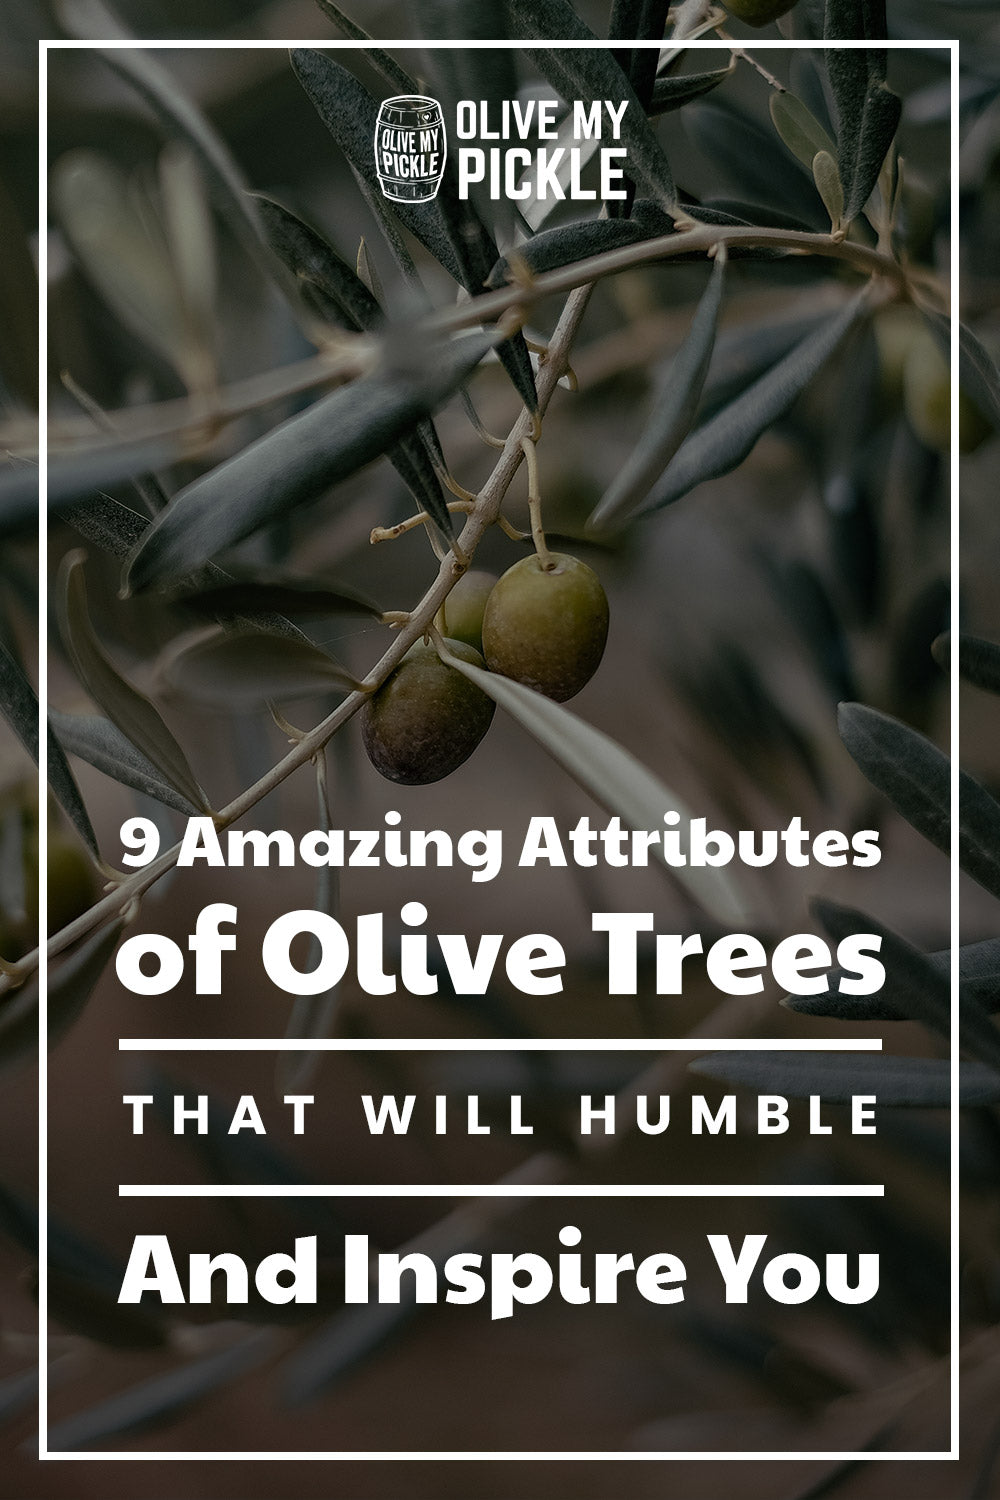 Amazing Attributes of Olive Trees